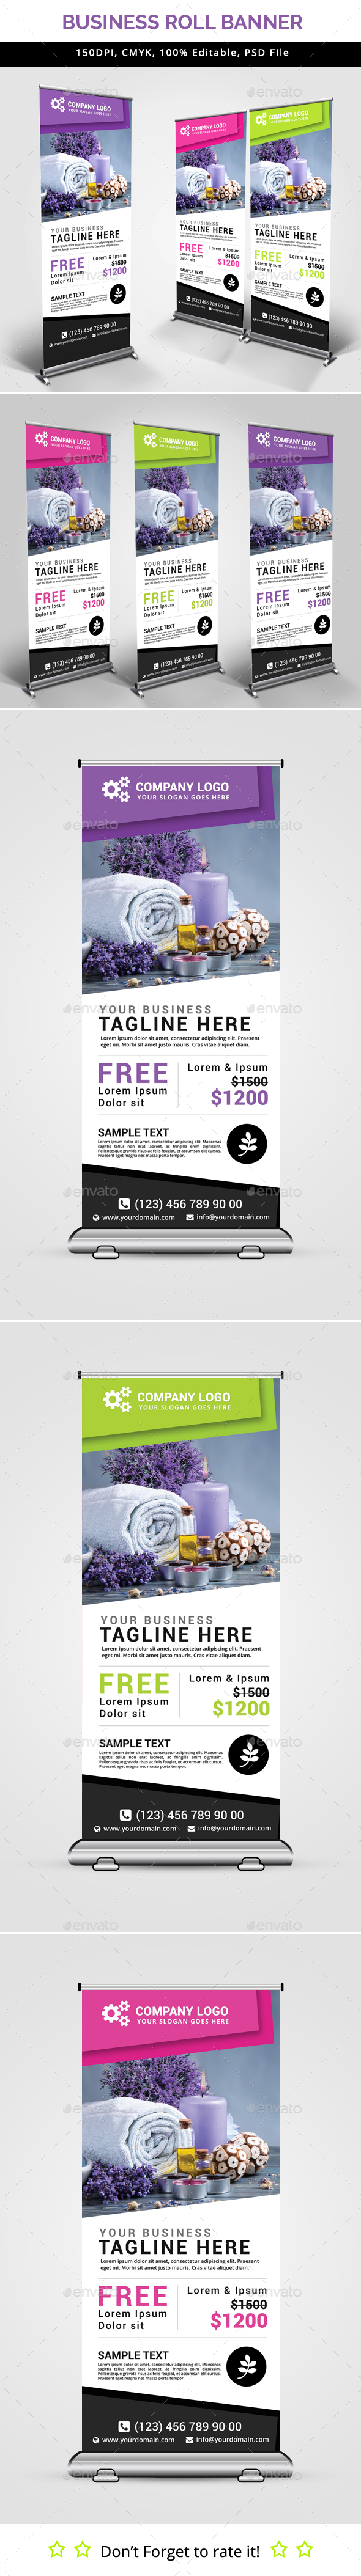 Business Roll Up Banner V26 - Signage Print Templates